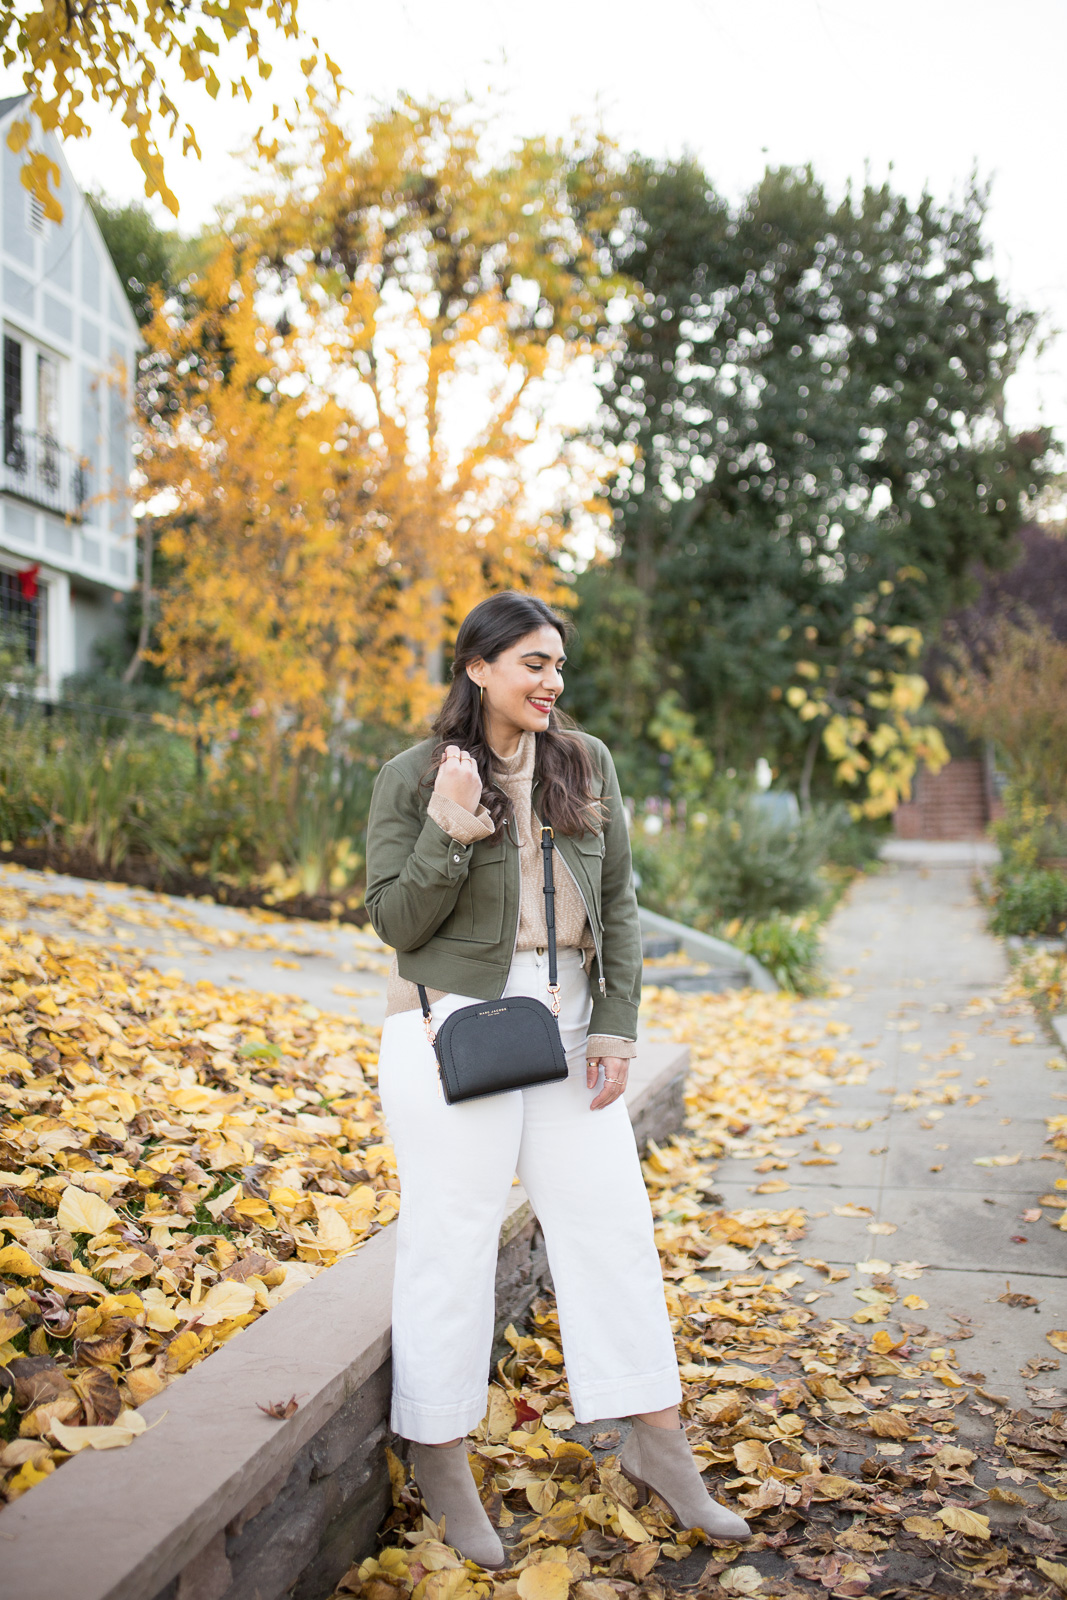 Winter in Los Angeles with layered madewell sweater and rage and bone jacket